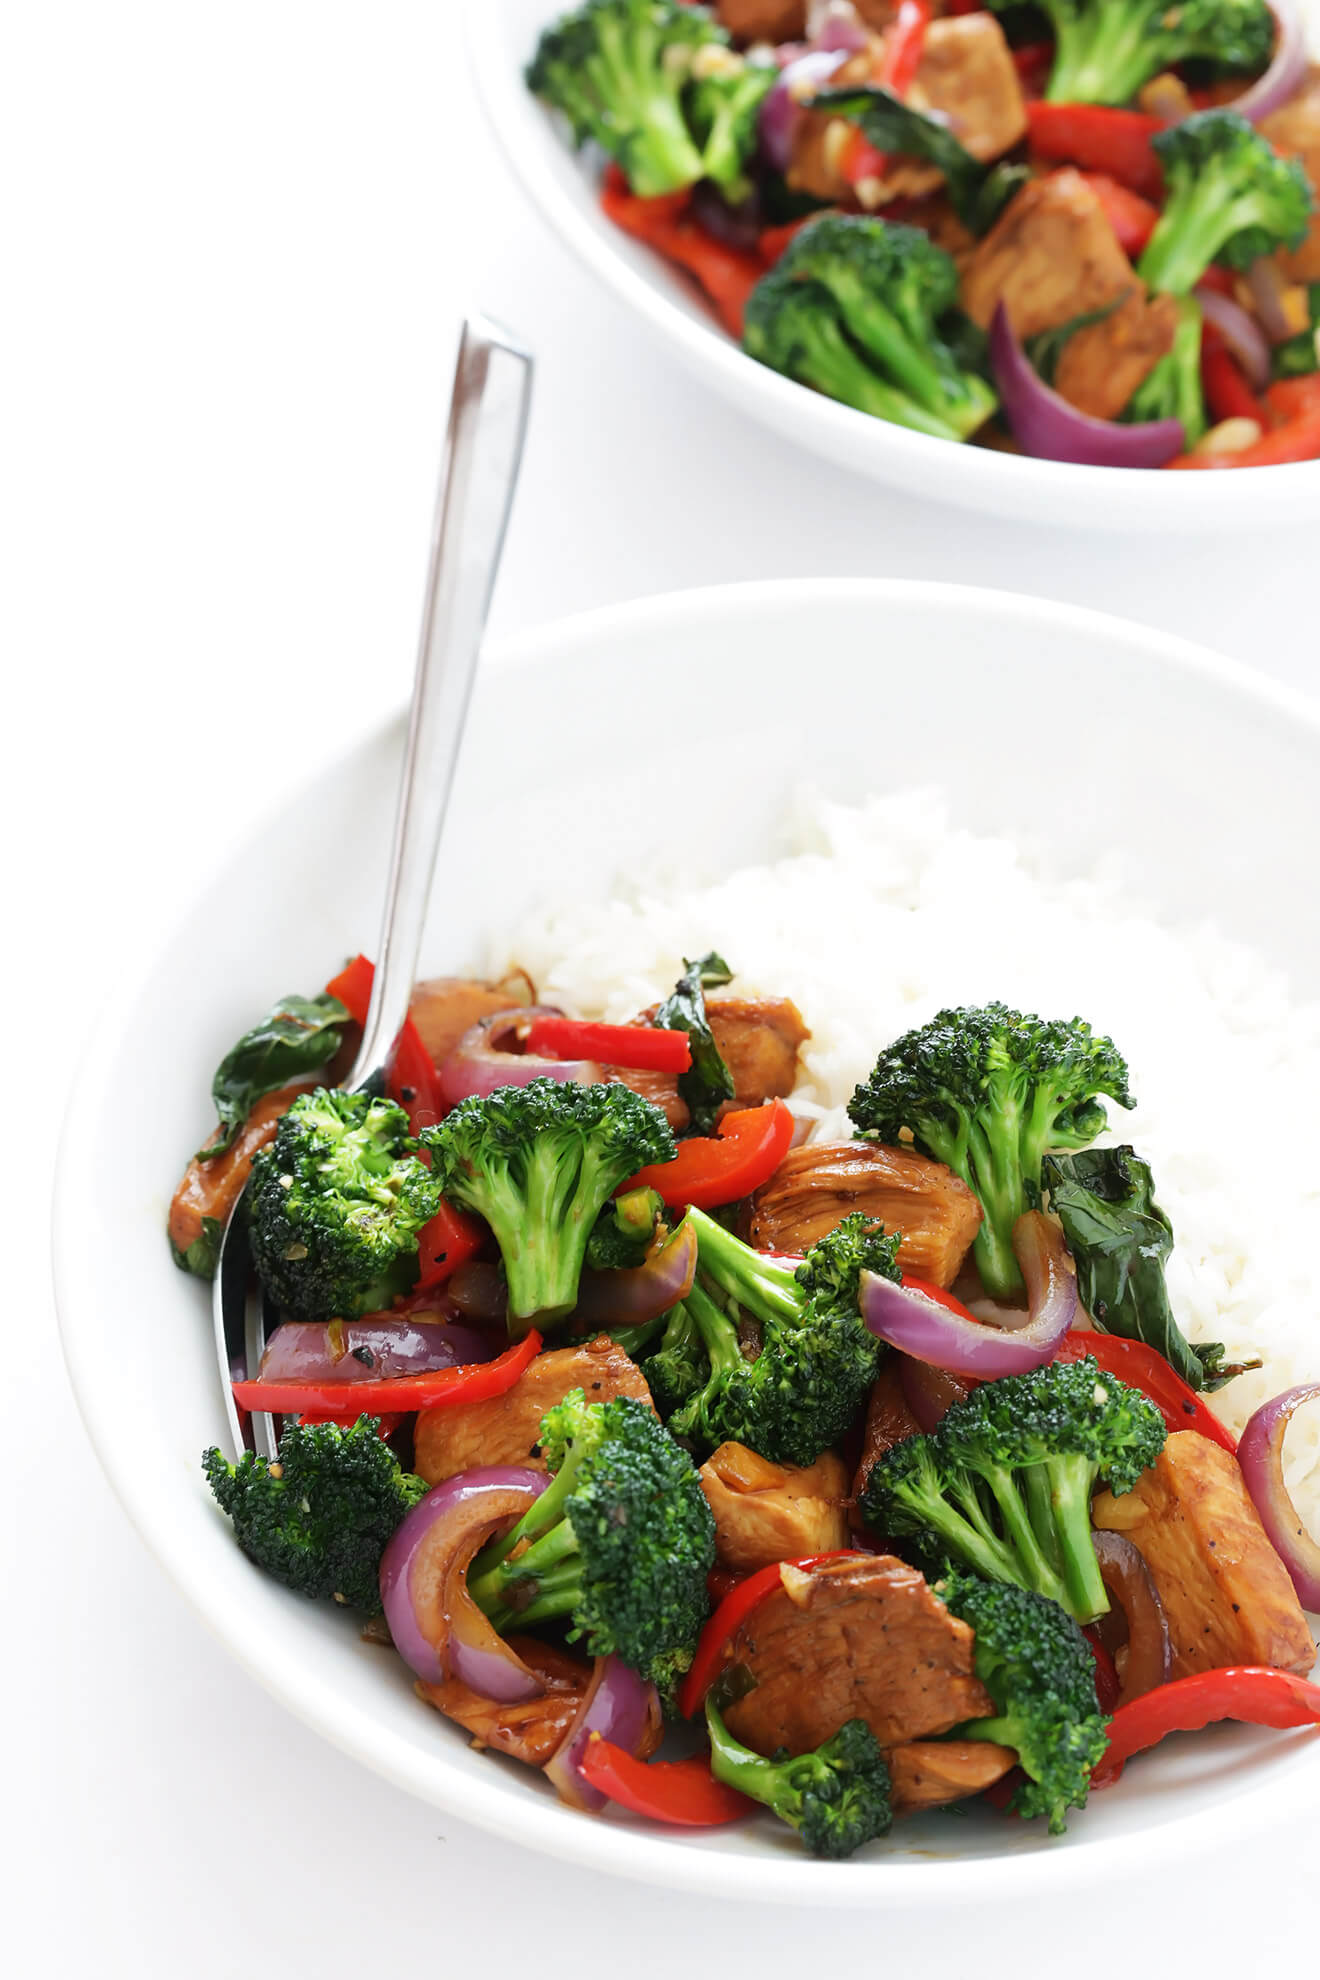 I'm obsessed with this easy recipe for Thai Basil Chicken! It's full of fresh veggies, tender chicken, and sauteed with the most delicious Thai basil sauce. | gimmesomeoven.com